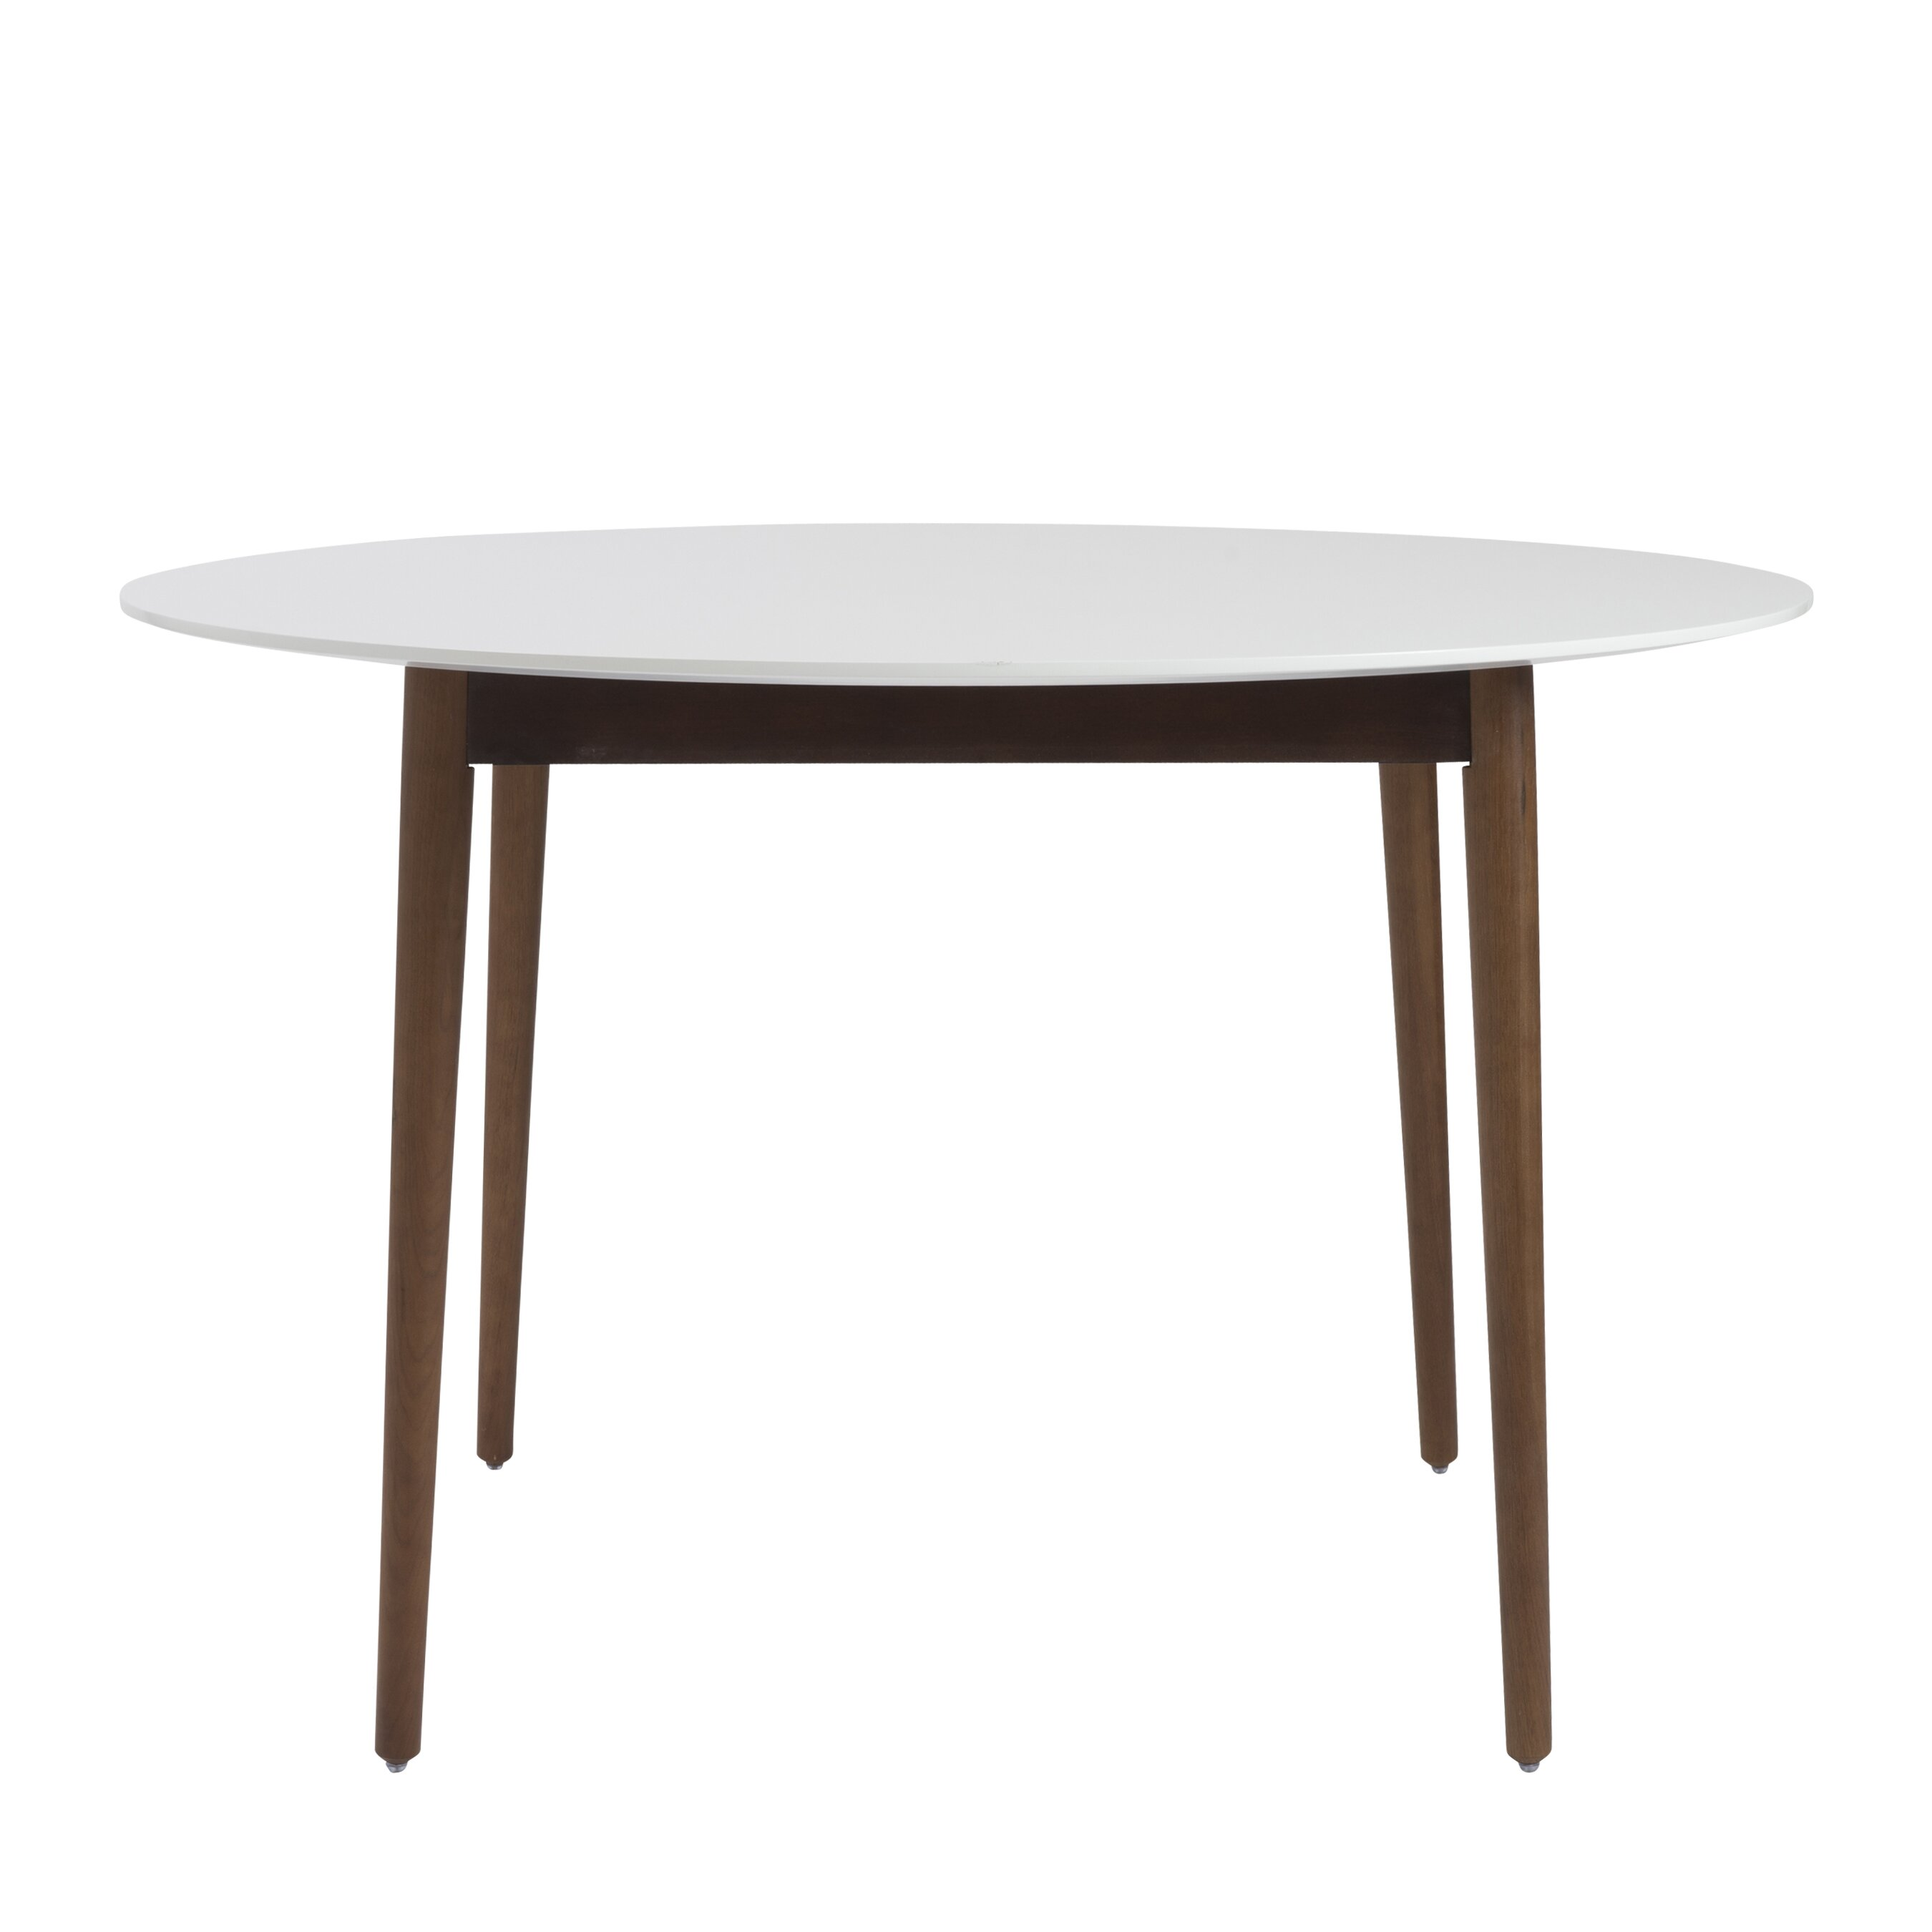 Italmodern manon dining table reviews wayfair for Wayfair dining table